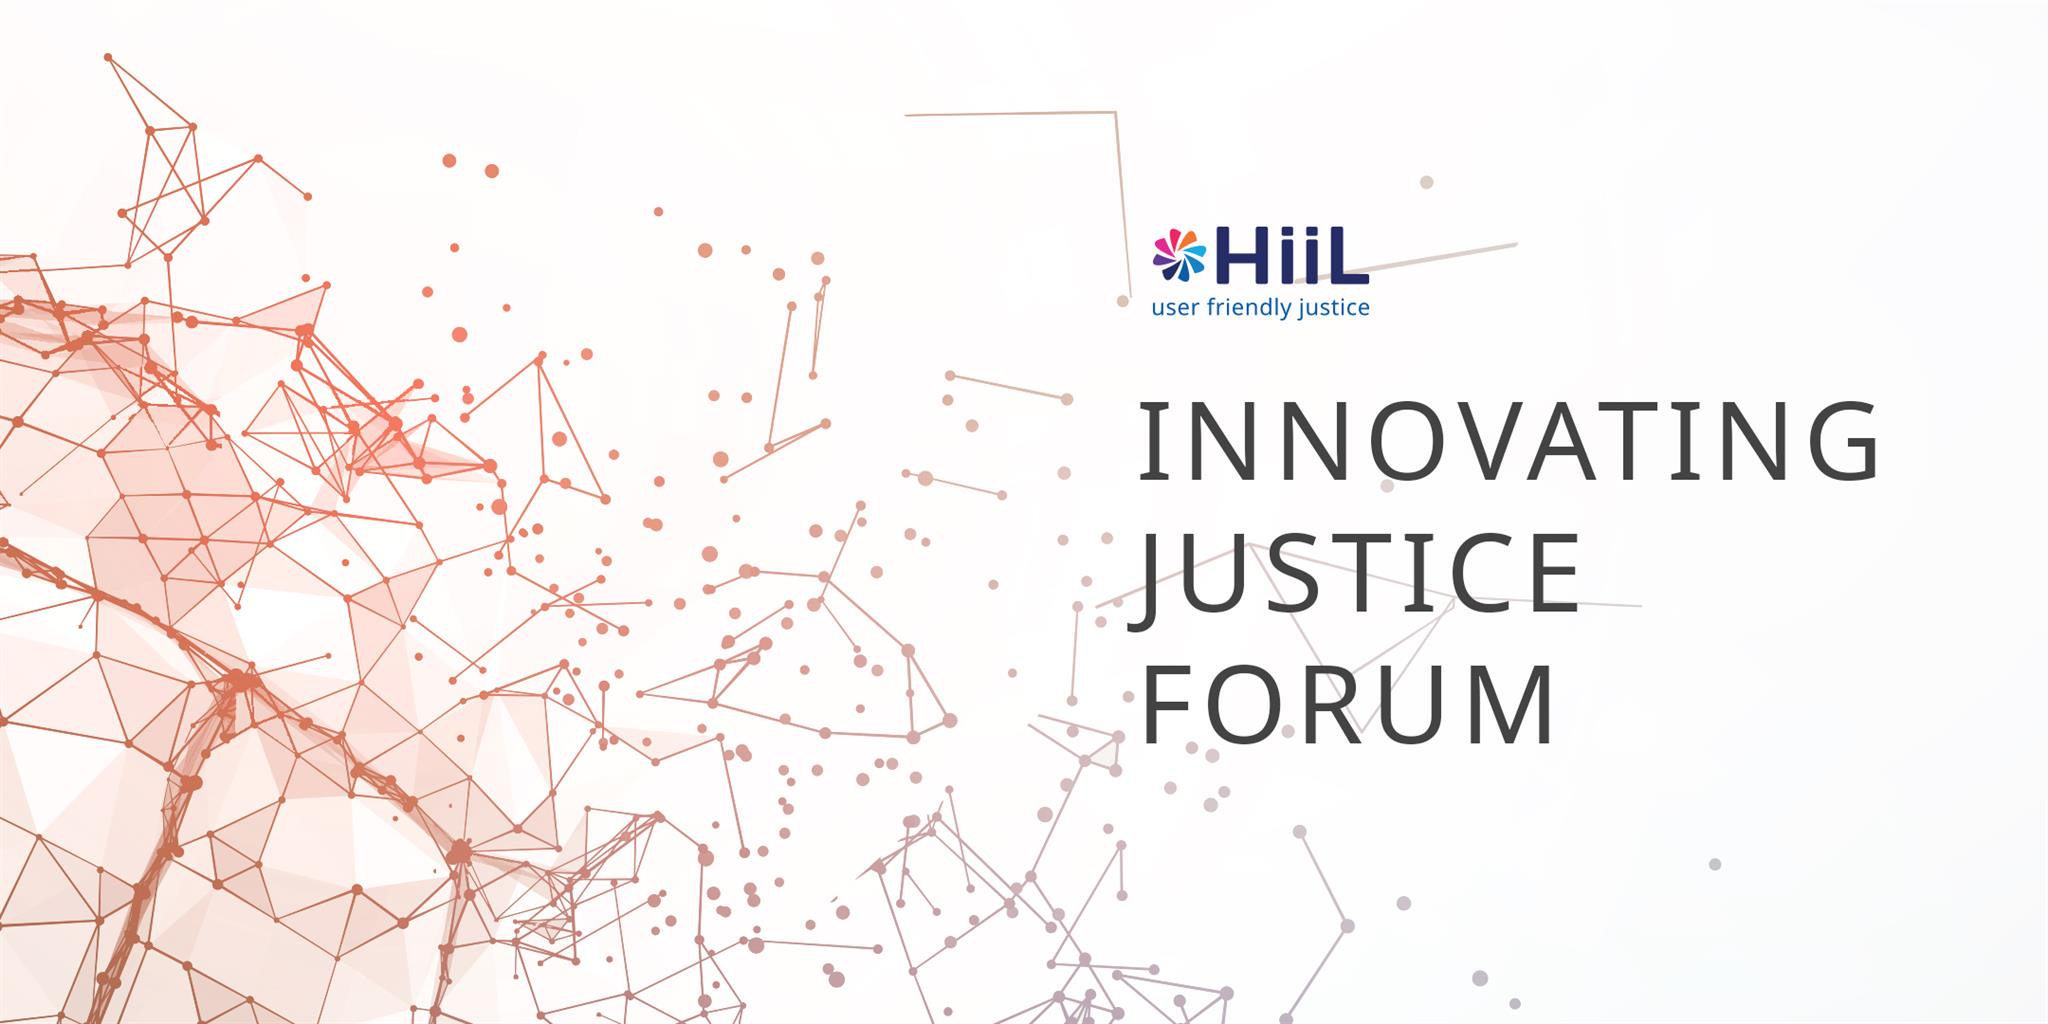 Using Technology to Accelerate Justice